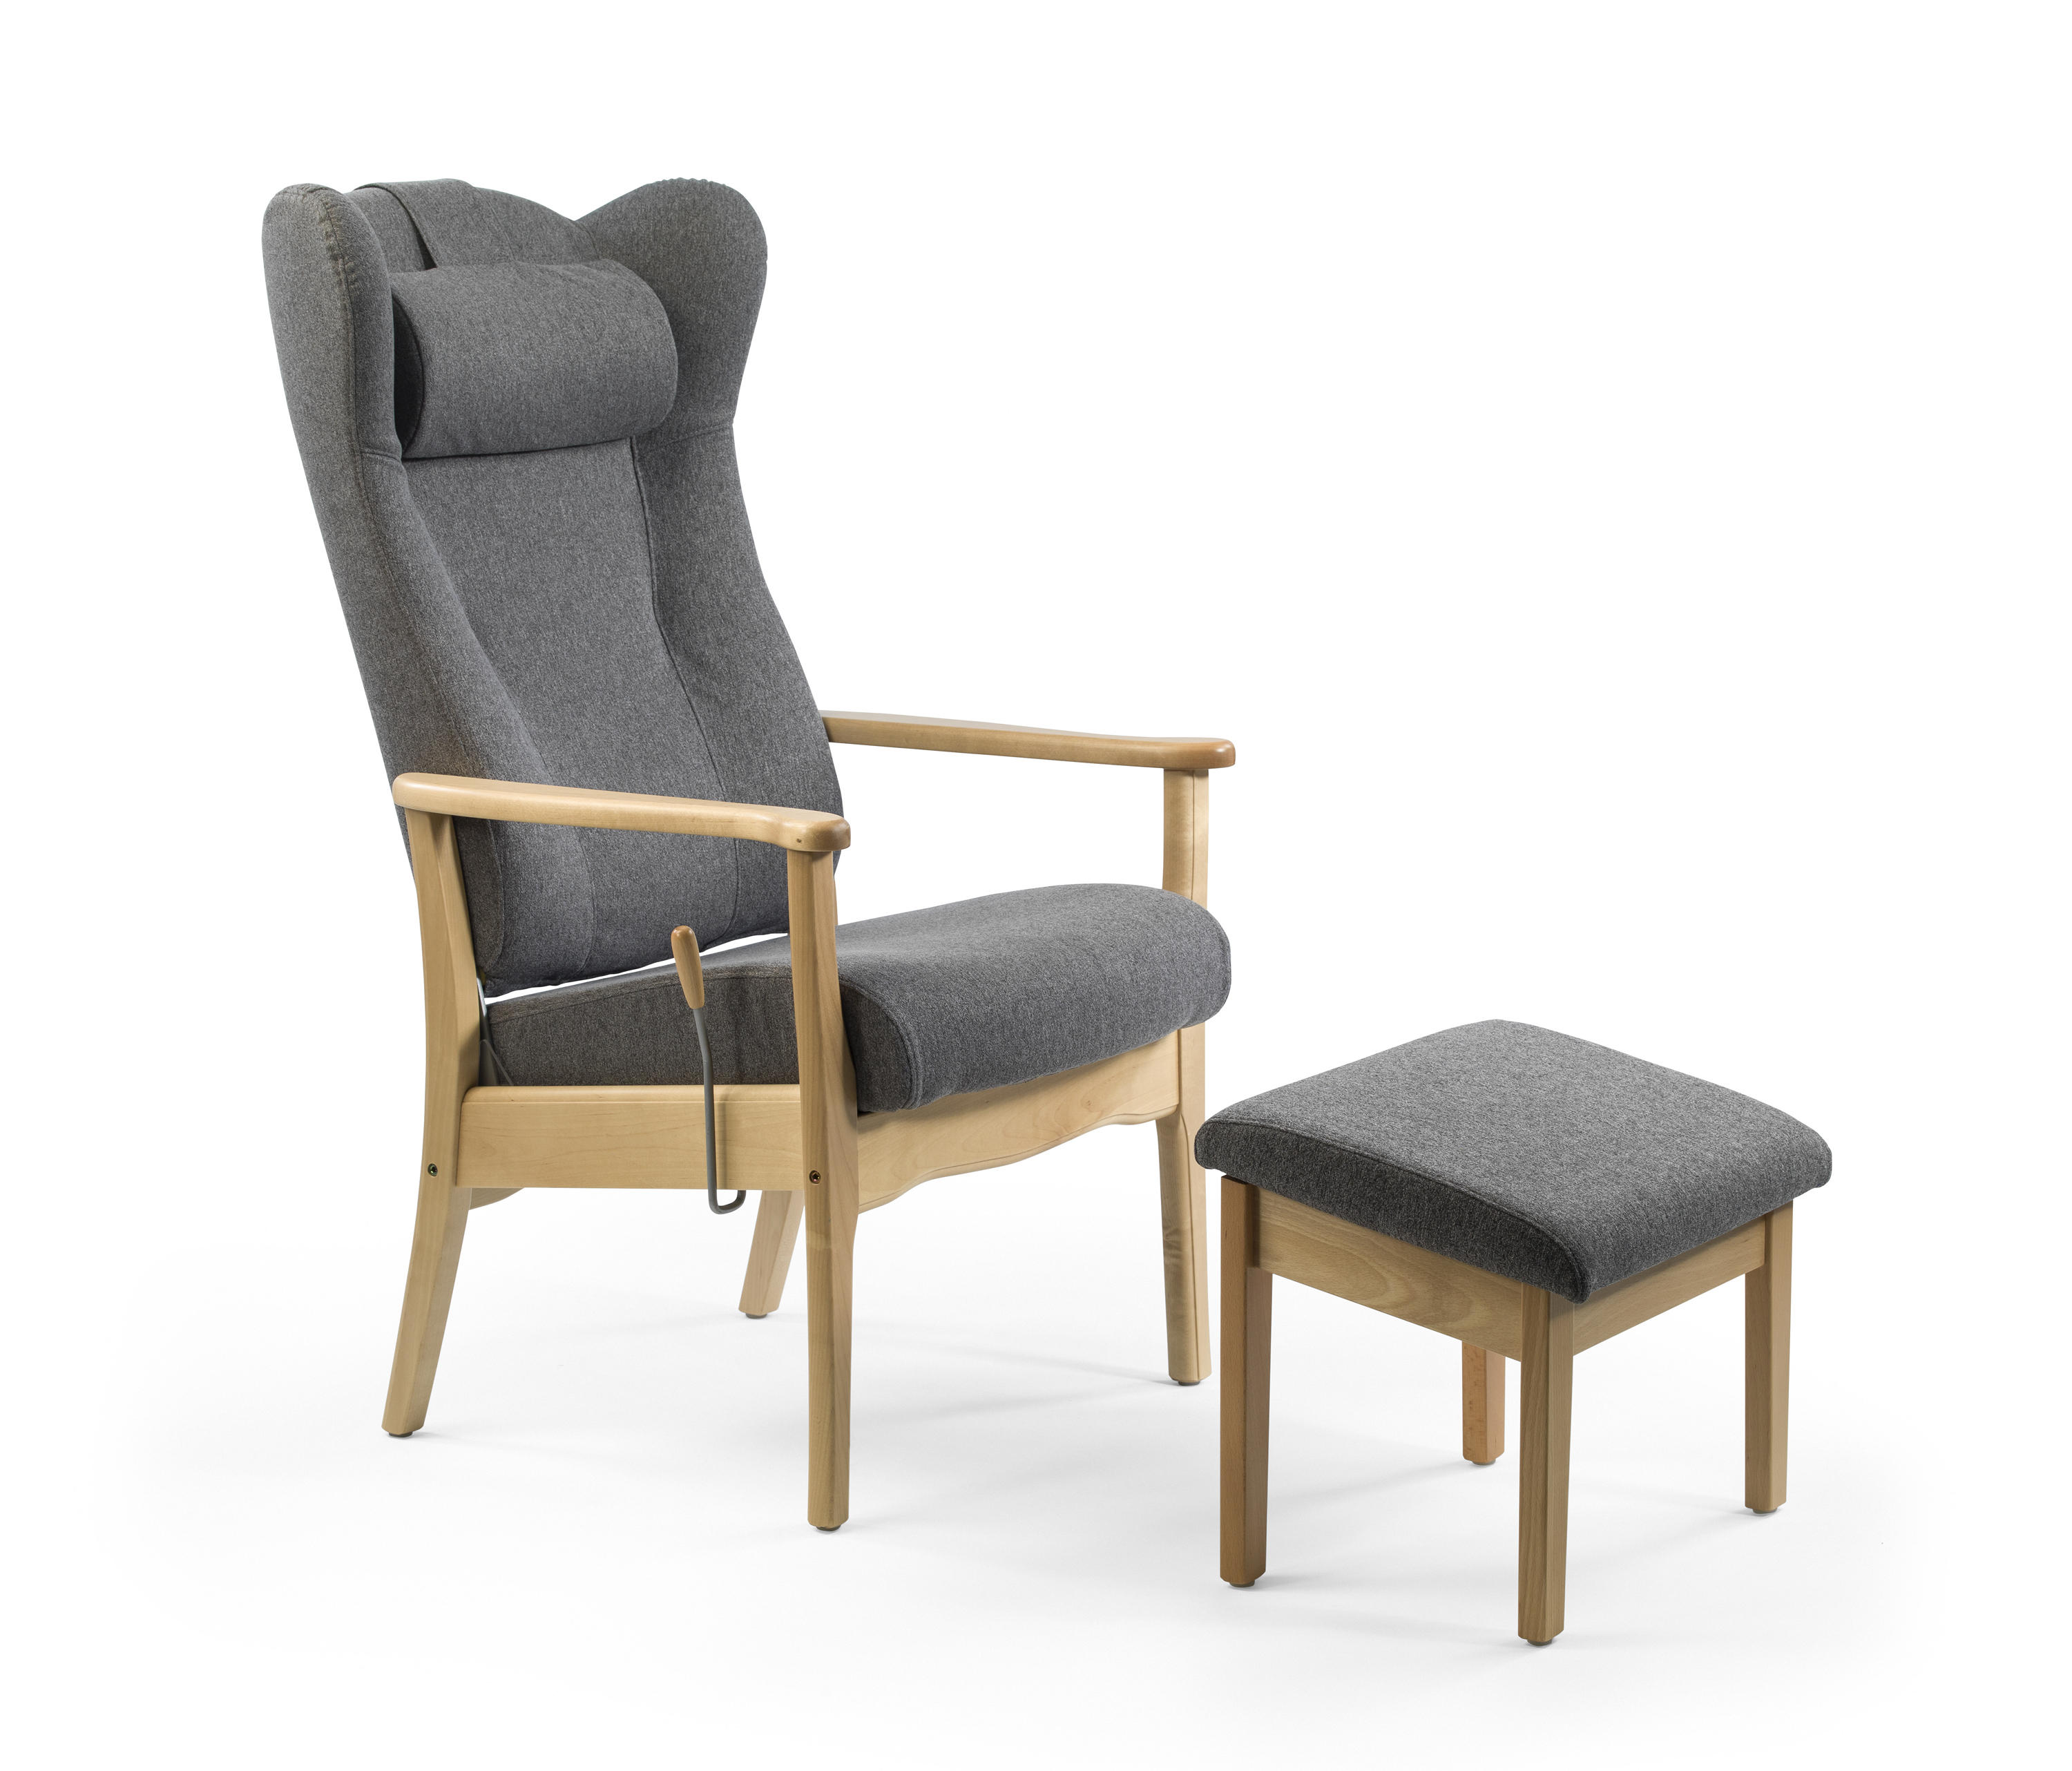 Ergo Recliner Chair Elderly Care Armchairs From Helland